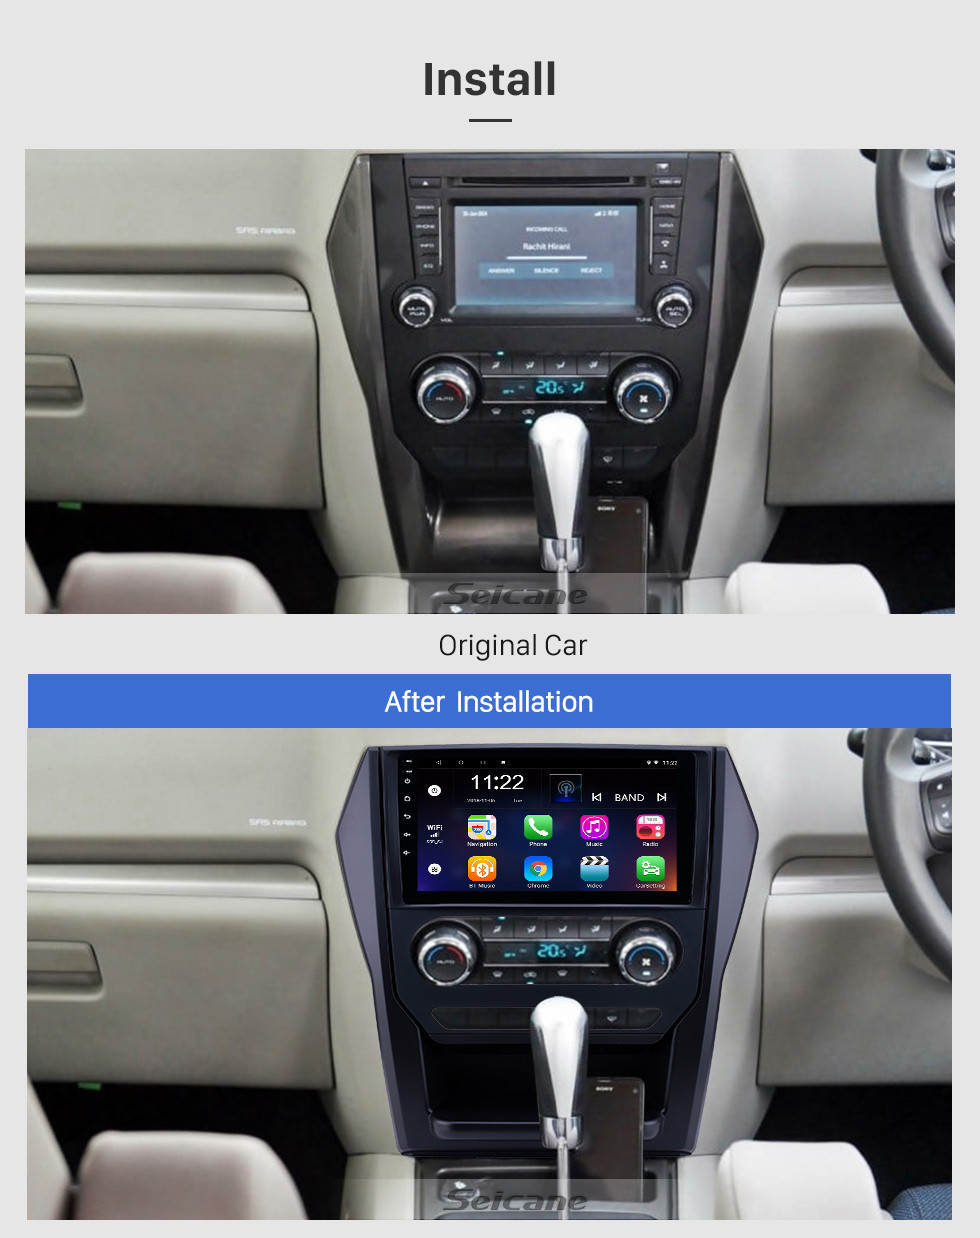 Seicane HD Touchscreen 2015 Mahindra Scorpio Auto A/C Android 10.0 9 inch GPS Navigation Radio Bluetooth USB Carplay WIFI AUX support DAB+ OBD2